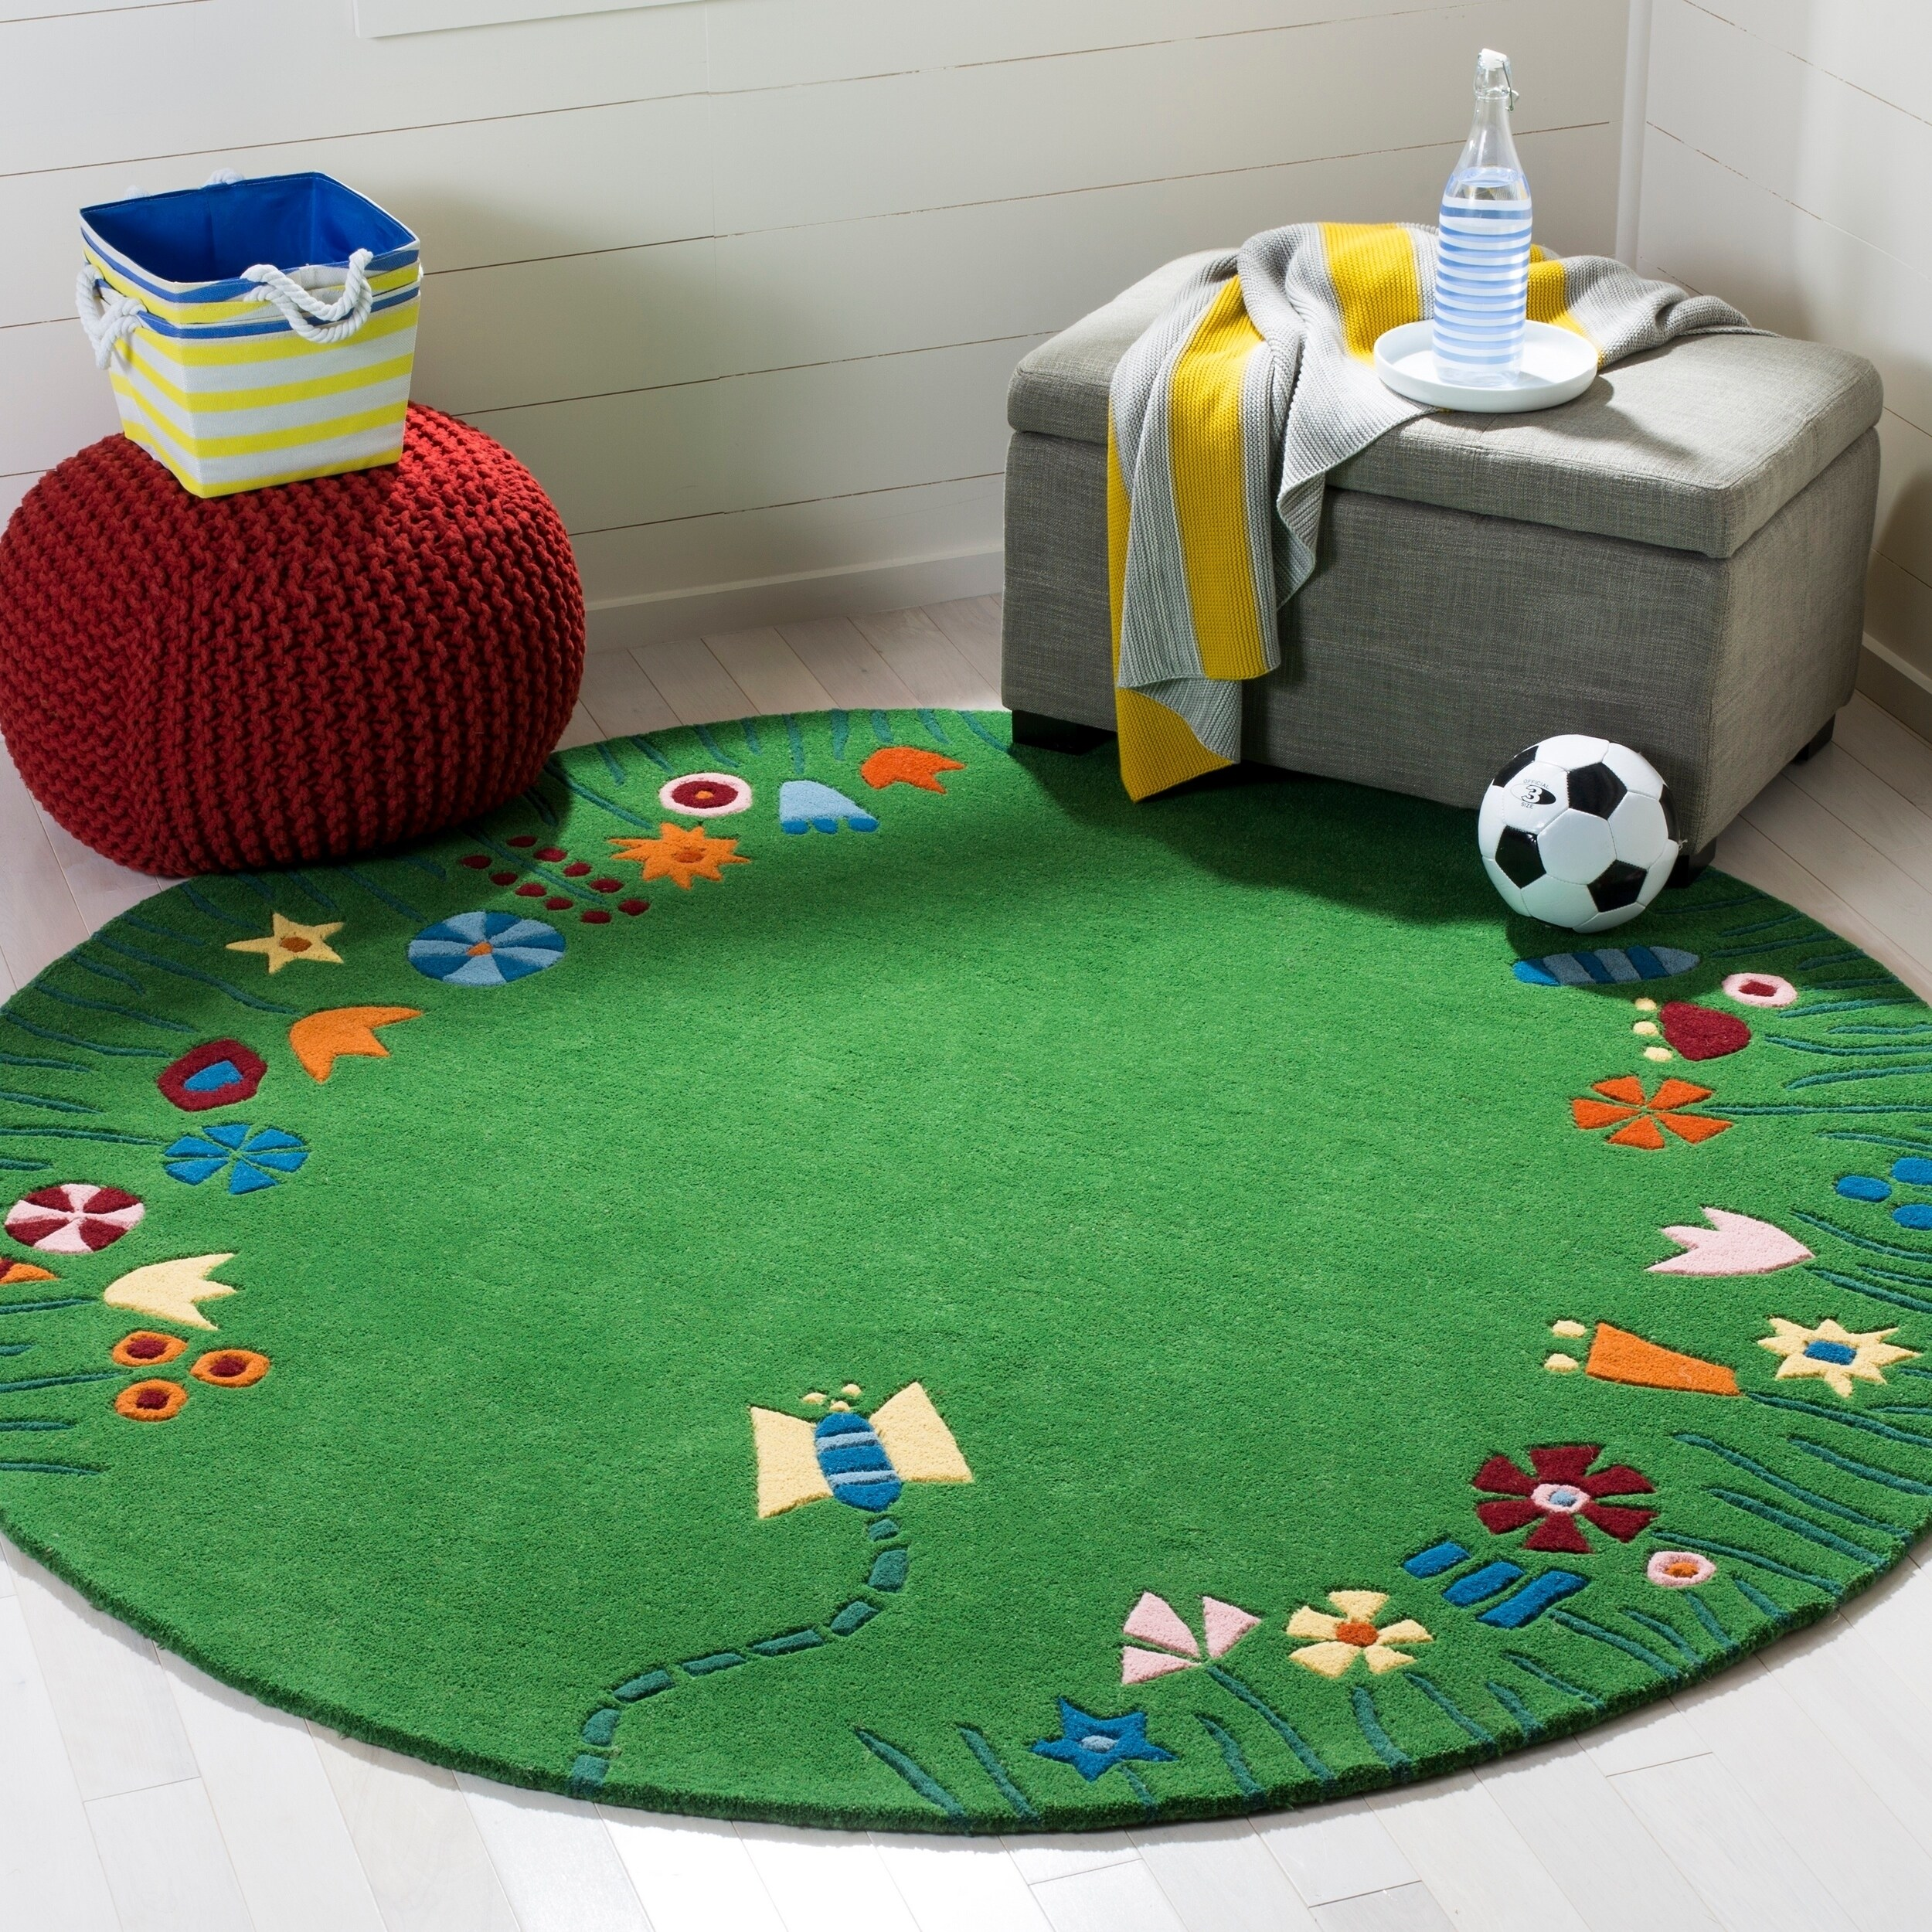 Children's Floor Rugs Safavieh Handmade Children S Summer Grass Green N Z Wool Rug 4 X 4 Round